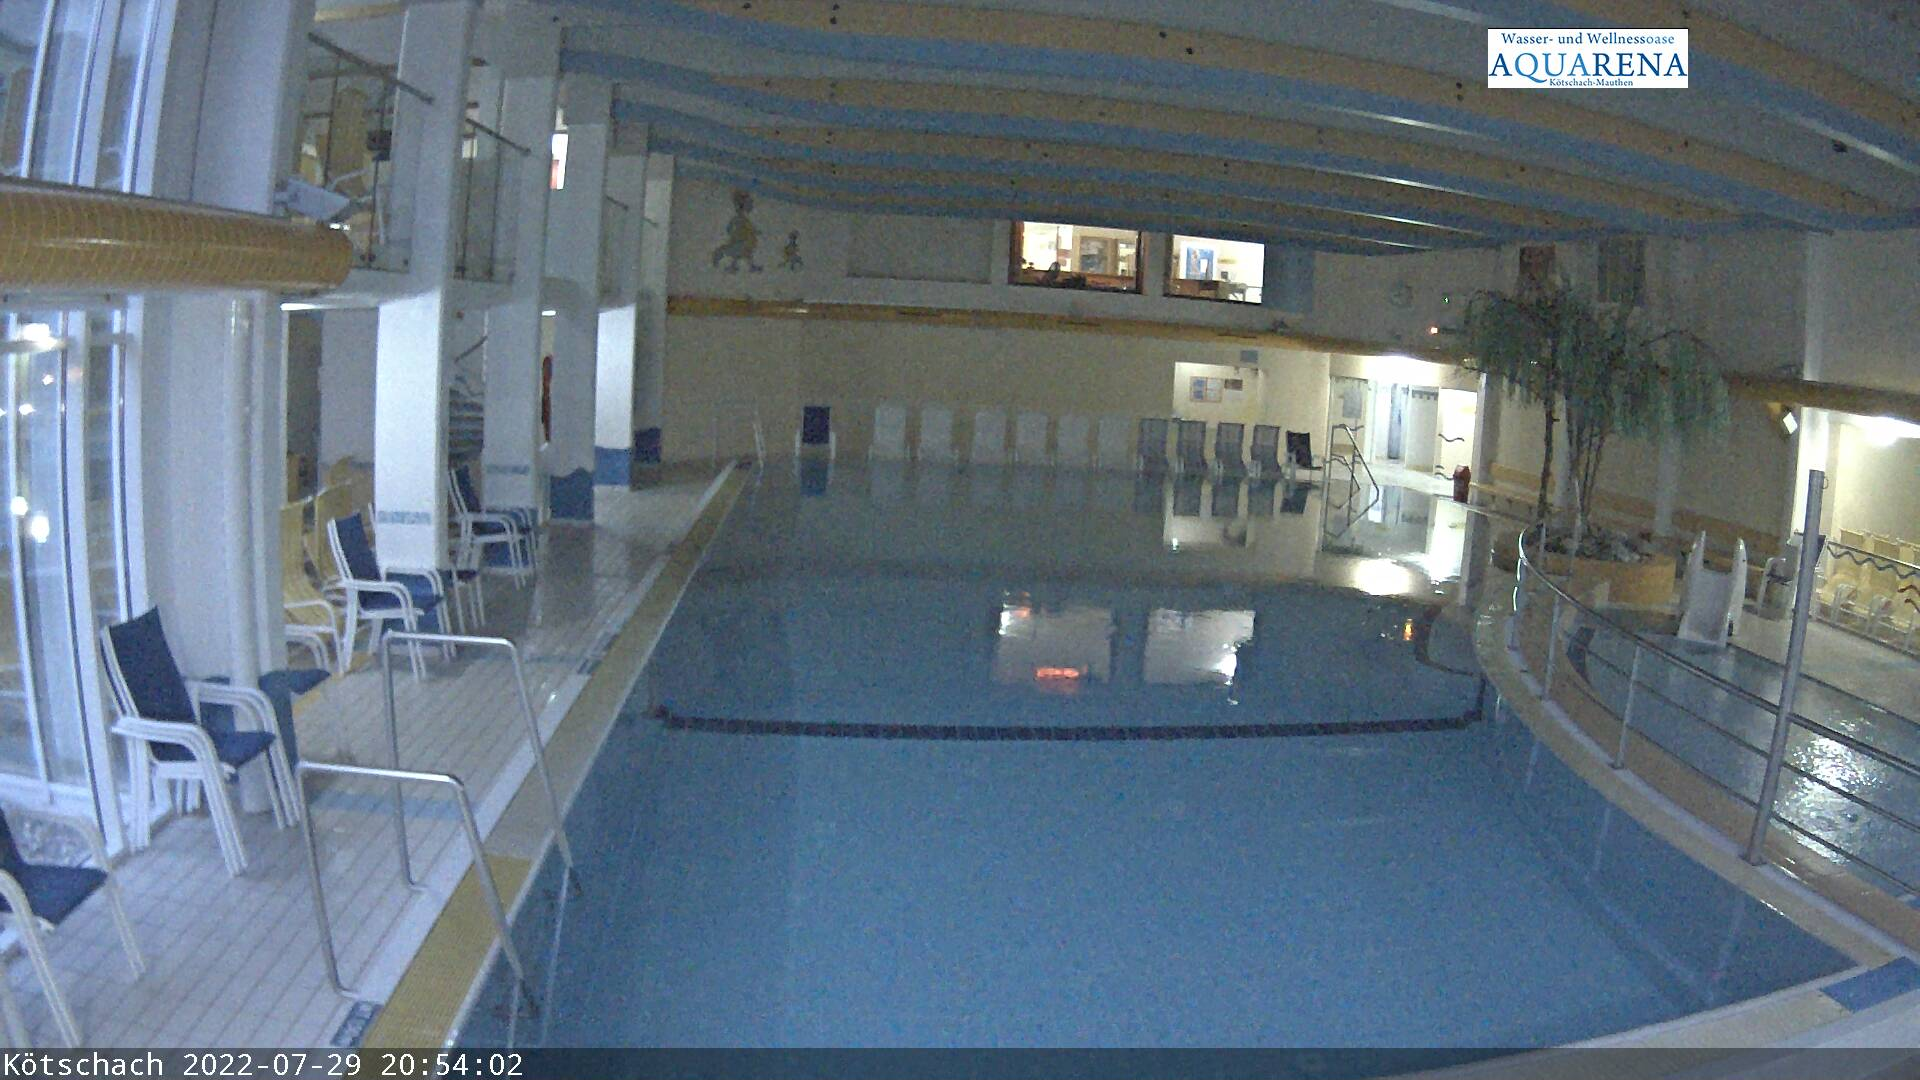 Aquarena-Webcam Hallenansicht